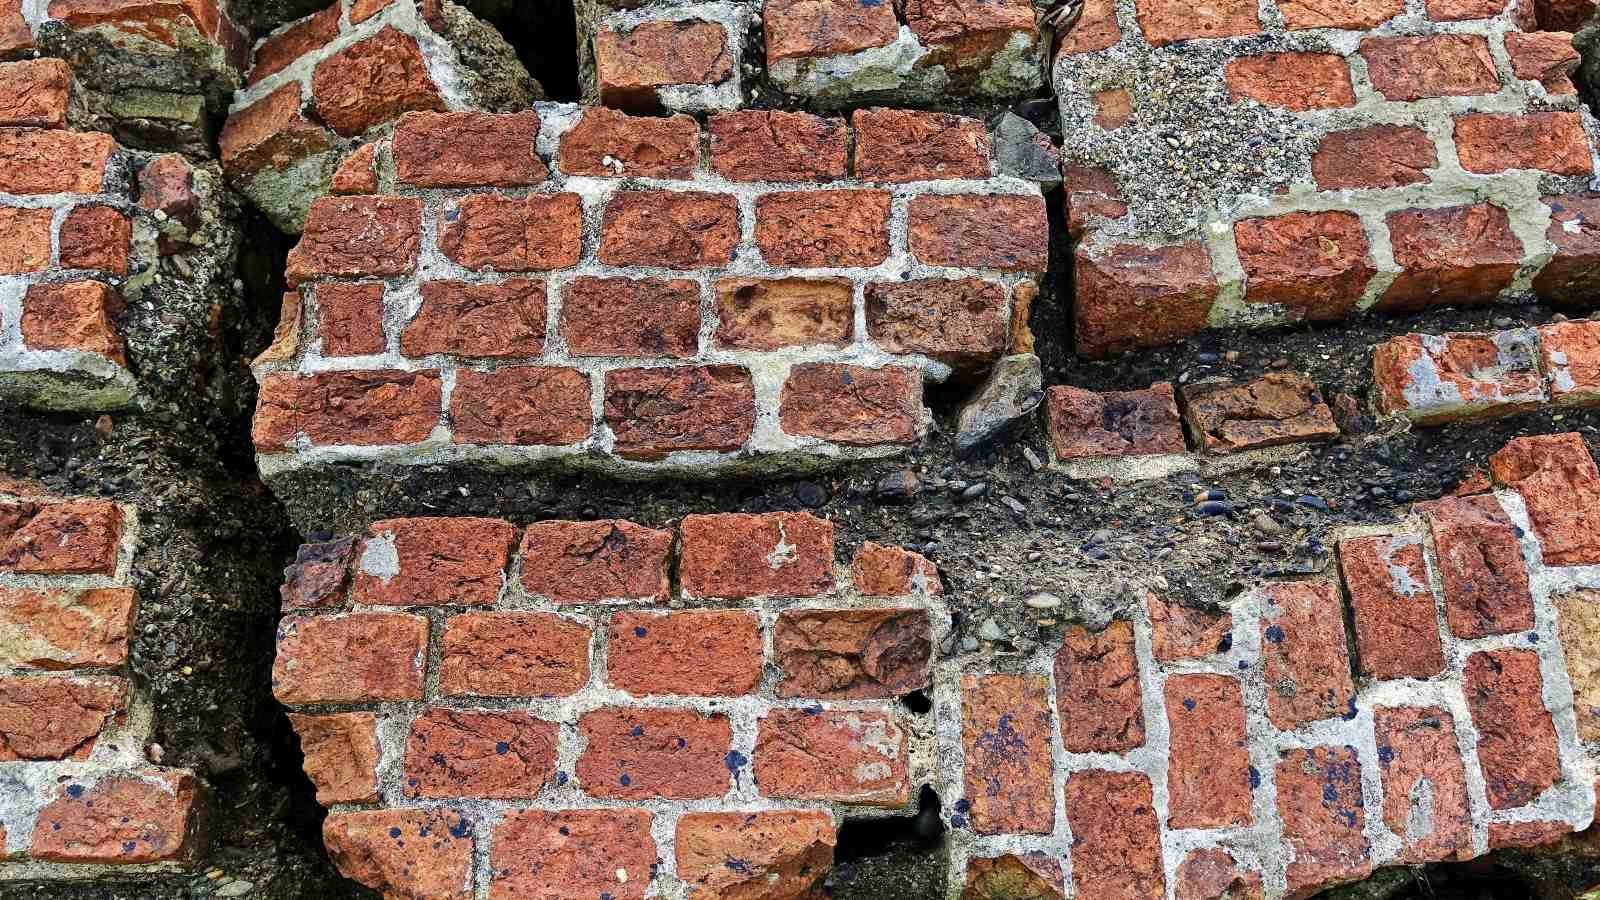 Brick wall with fractures from earthquake